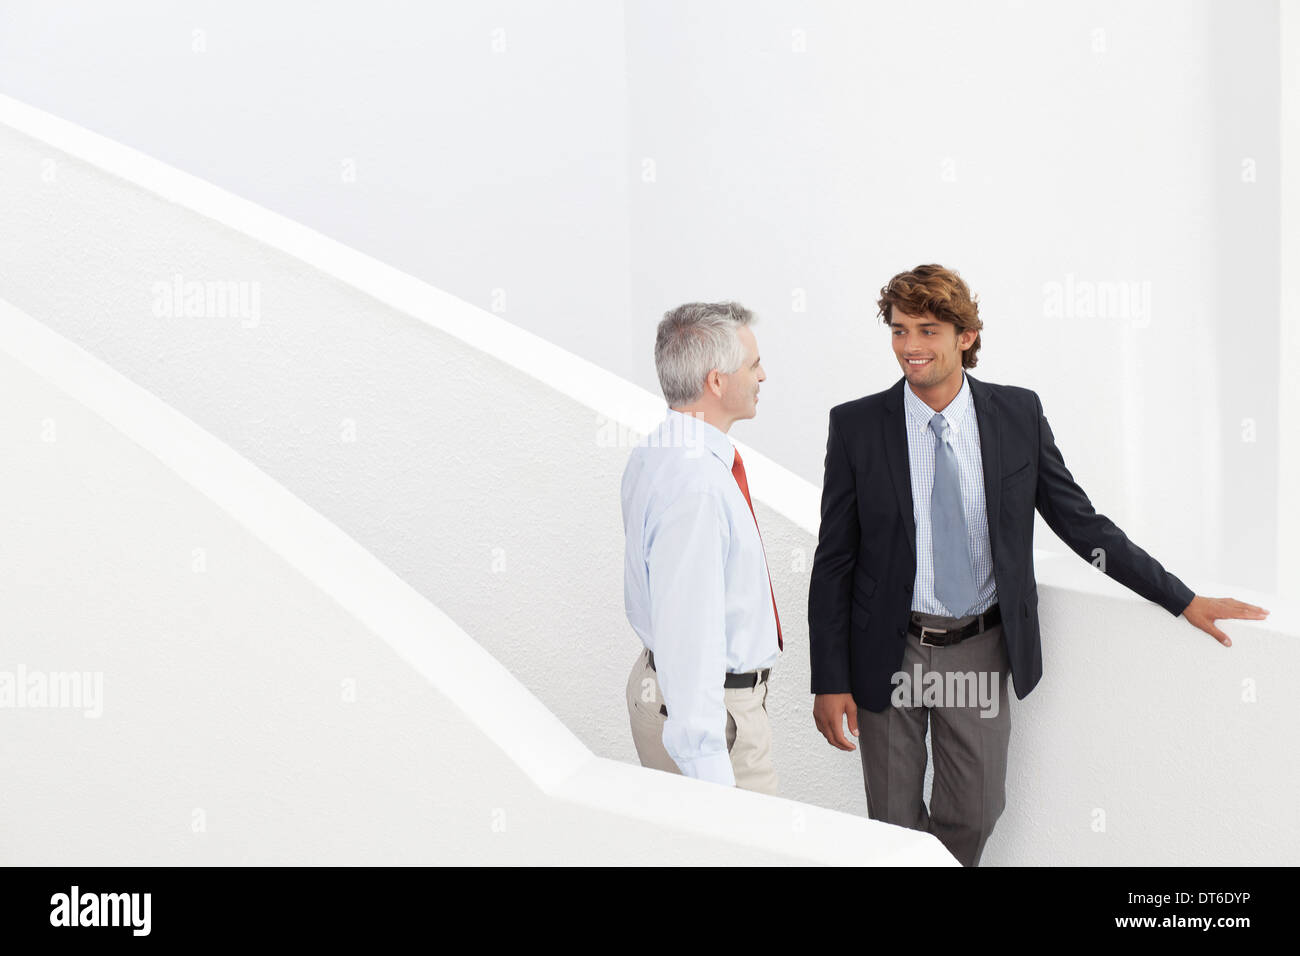 Business colleagues holding meeting on stairs - Stock Image